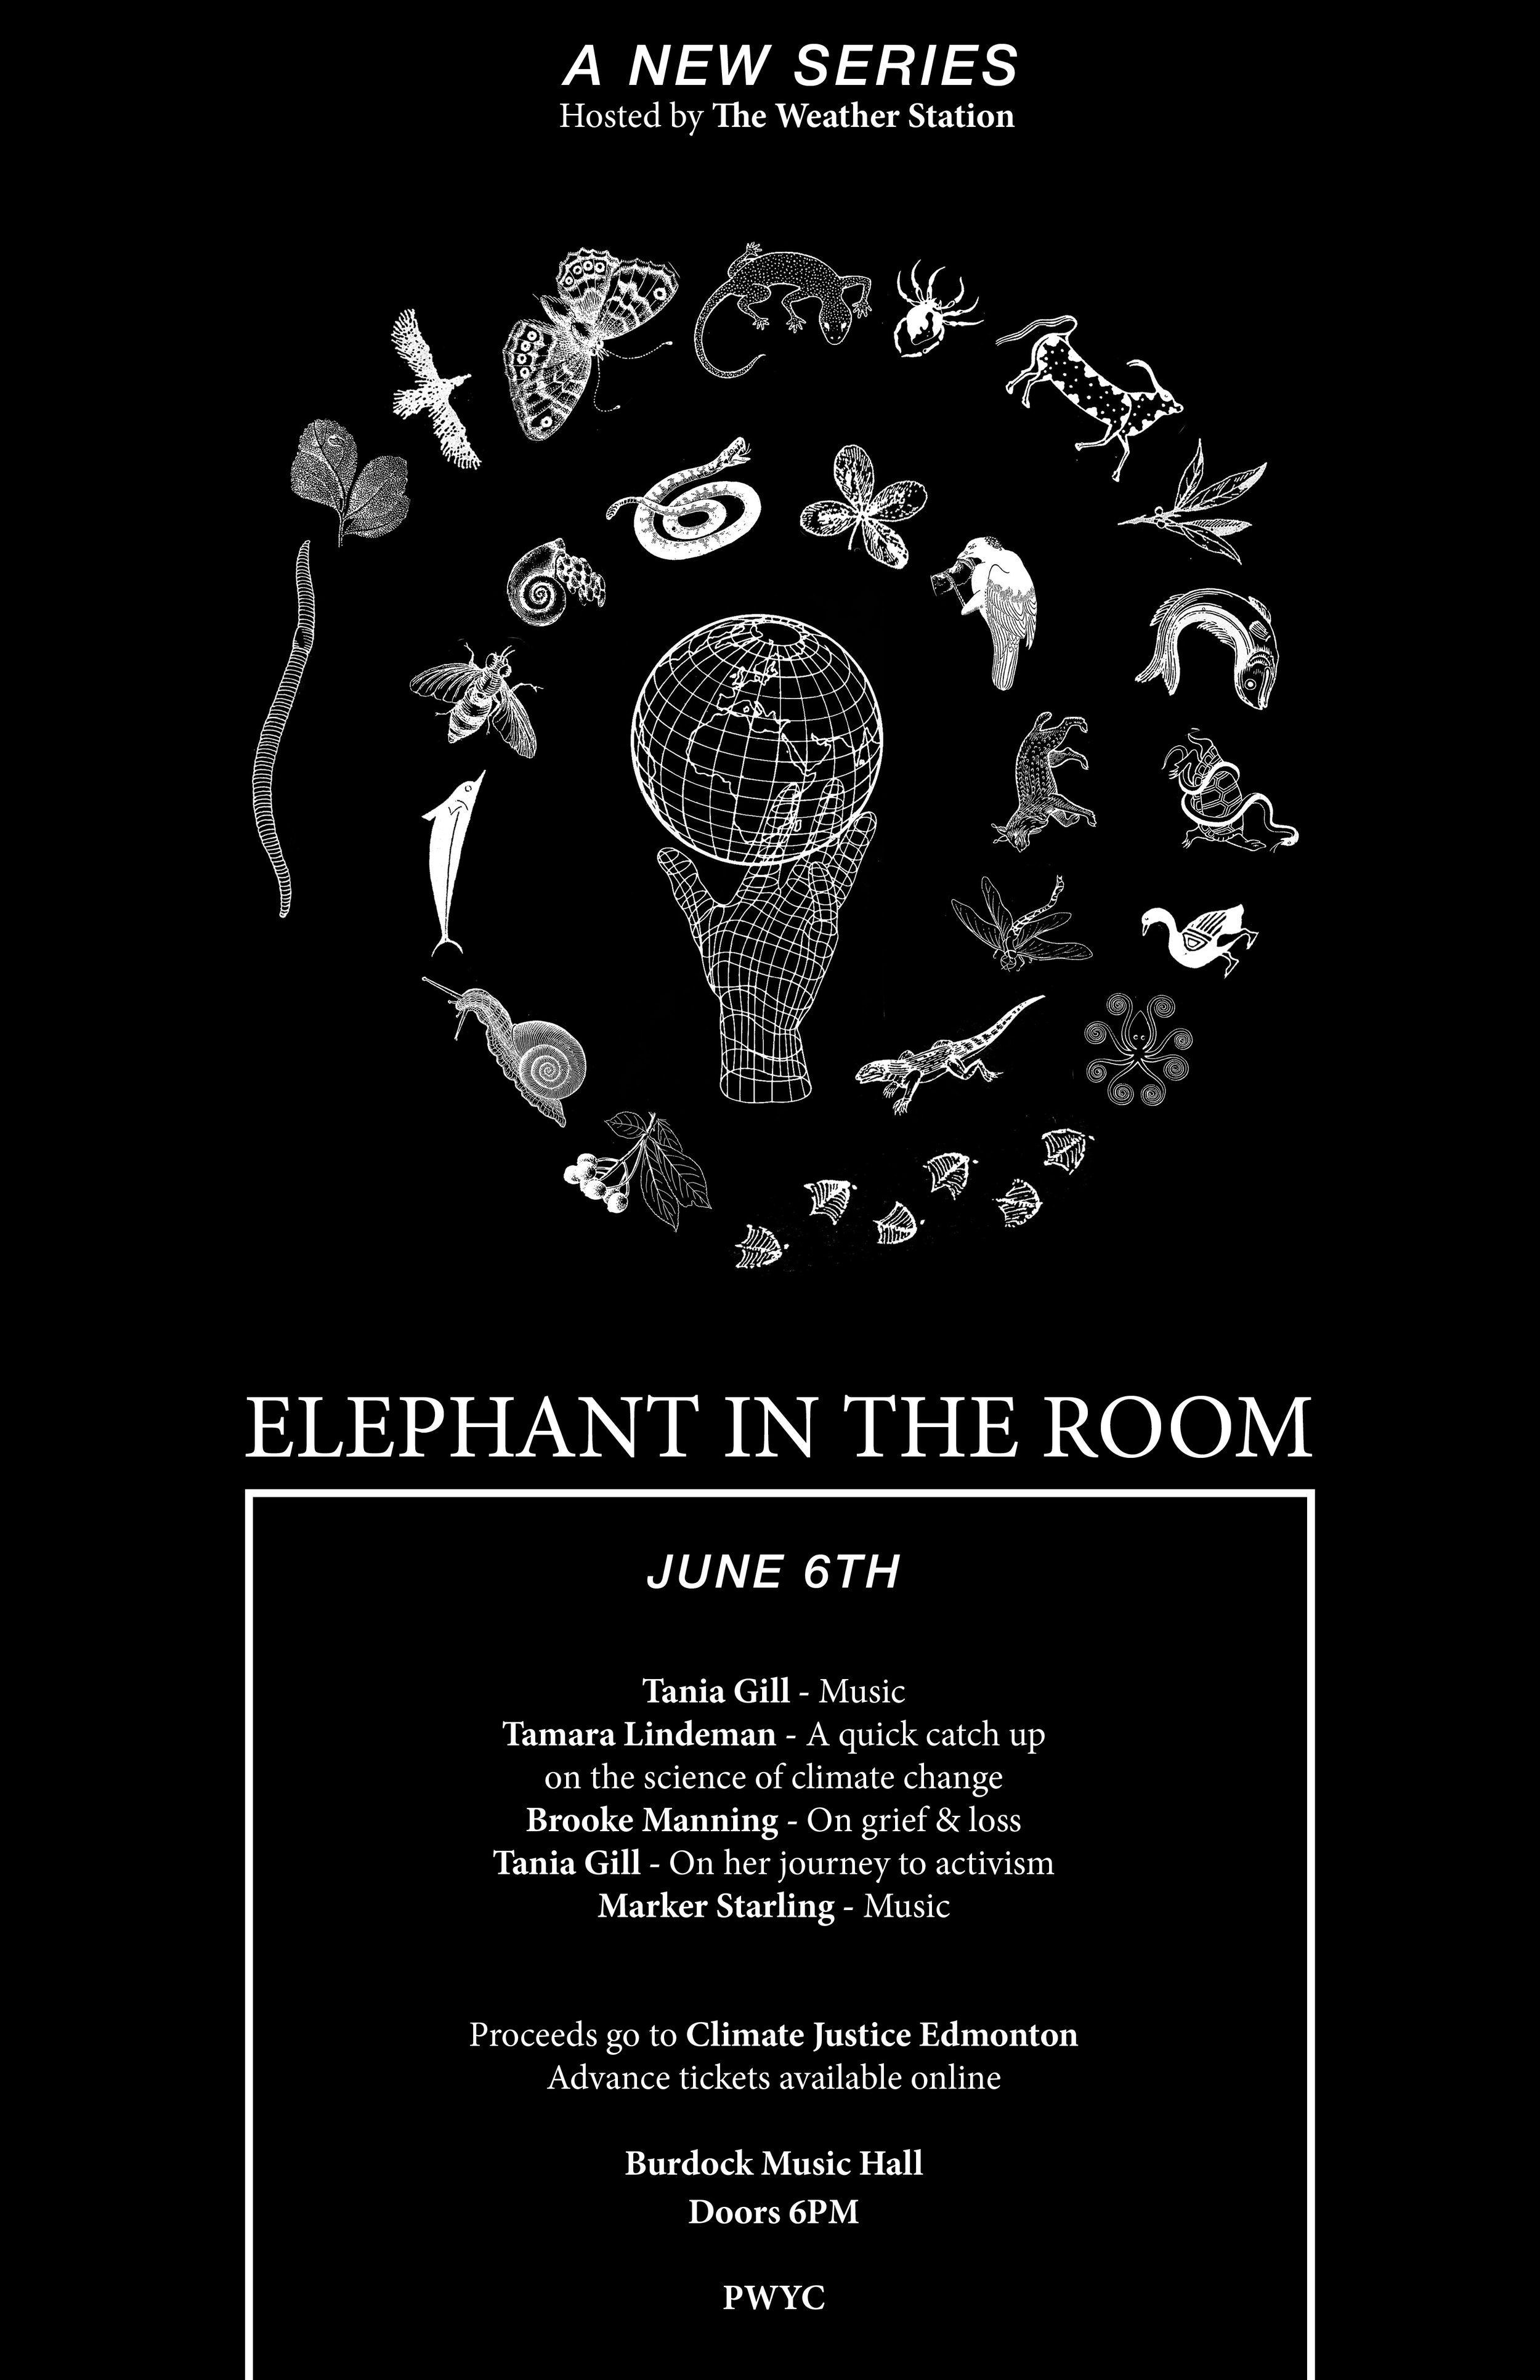 Elephant in the room  Illustration by Alicia Nauta  Layout by Melissa Richards  2019